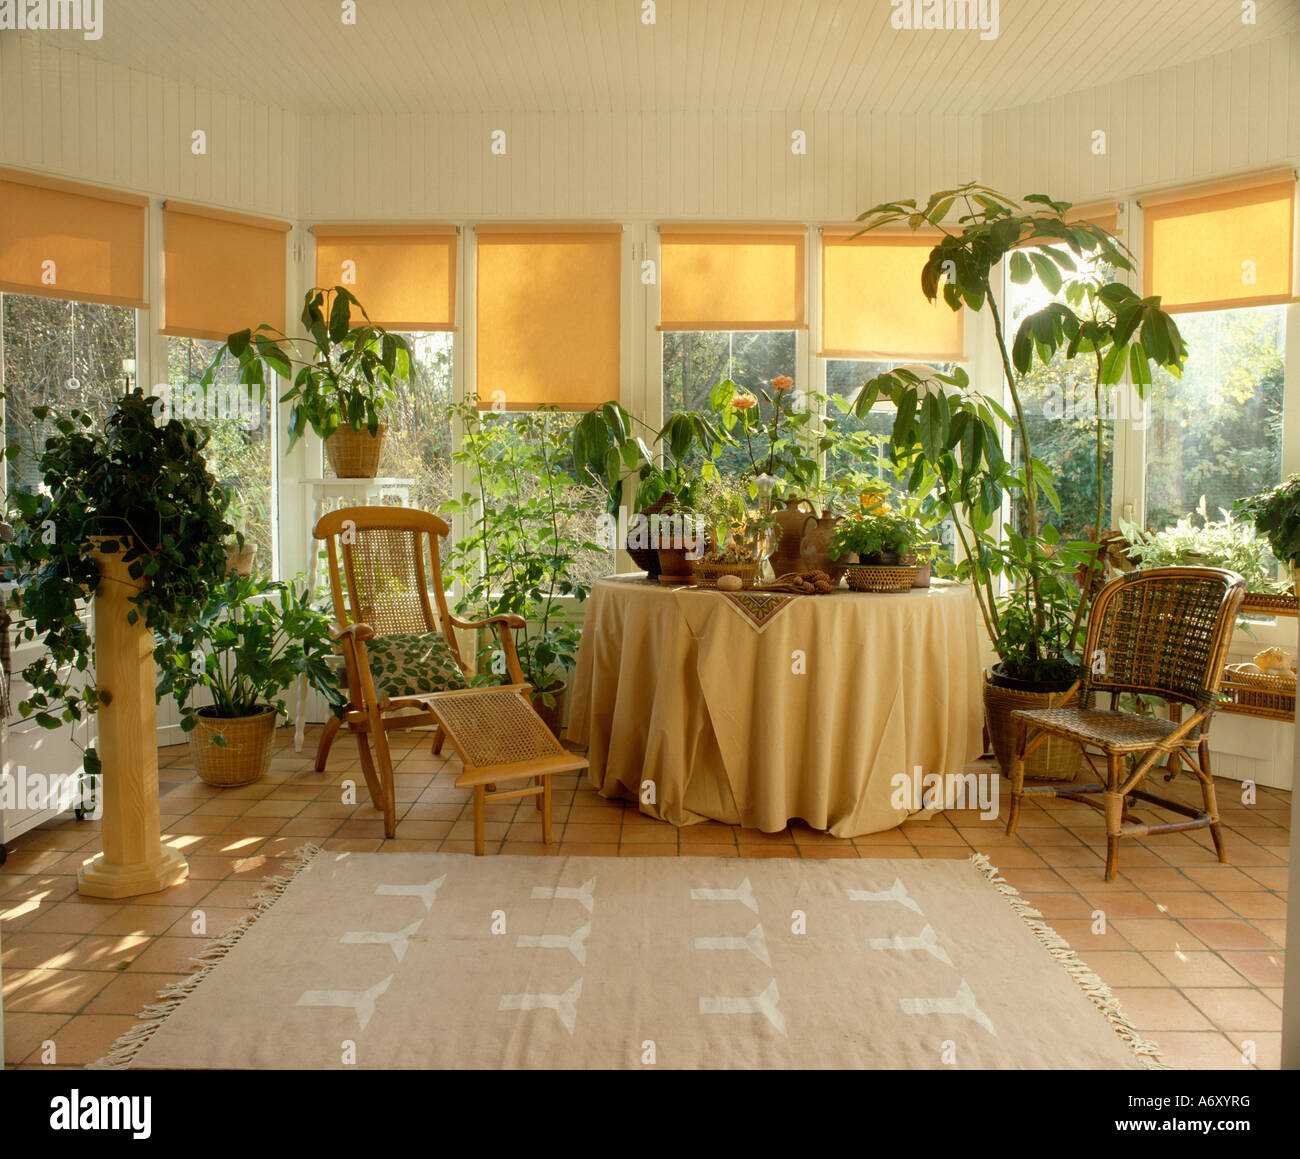 Yellow Blinds On Windows Of Sunroom With Lounger And Houseplants And